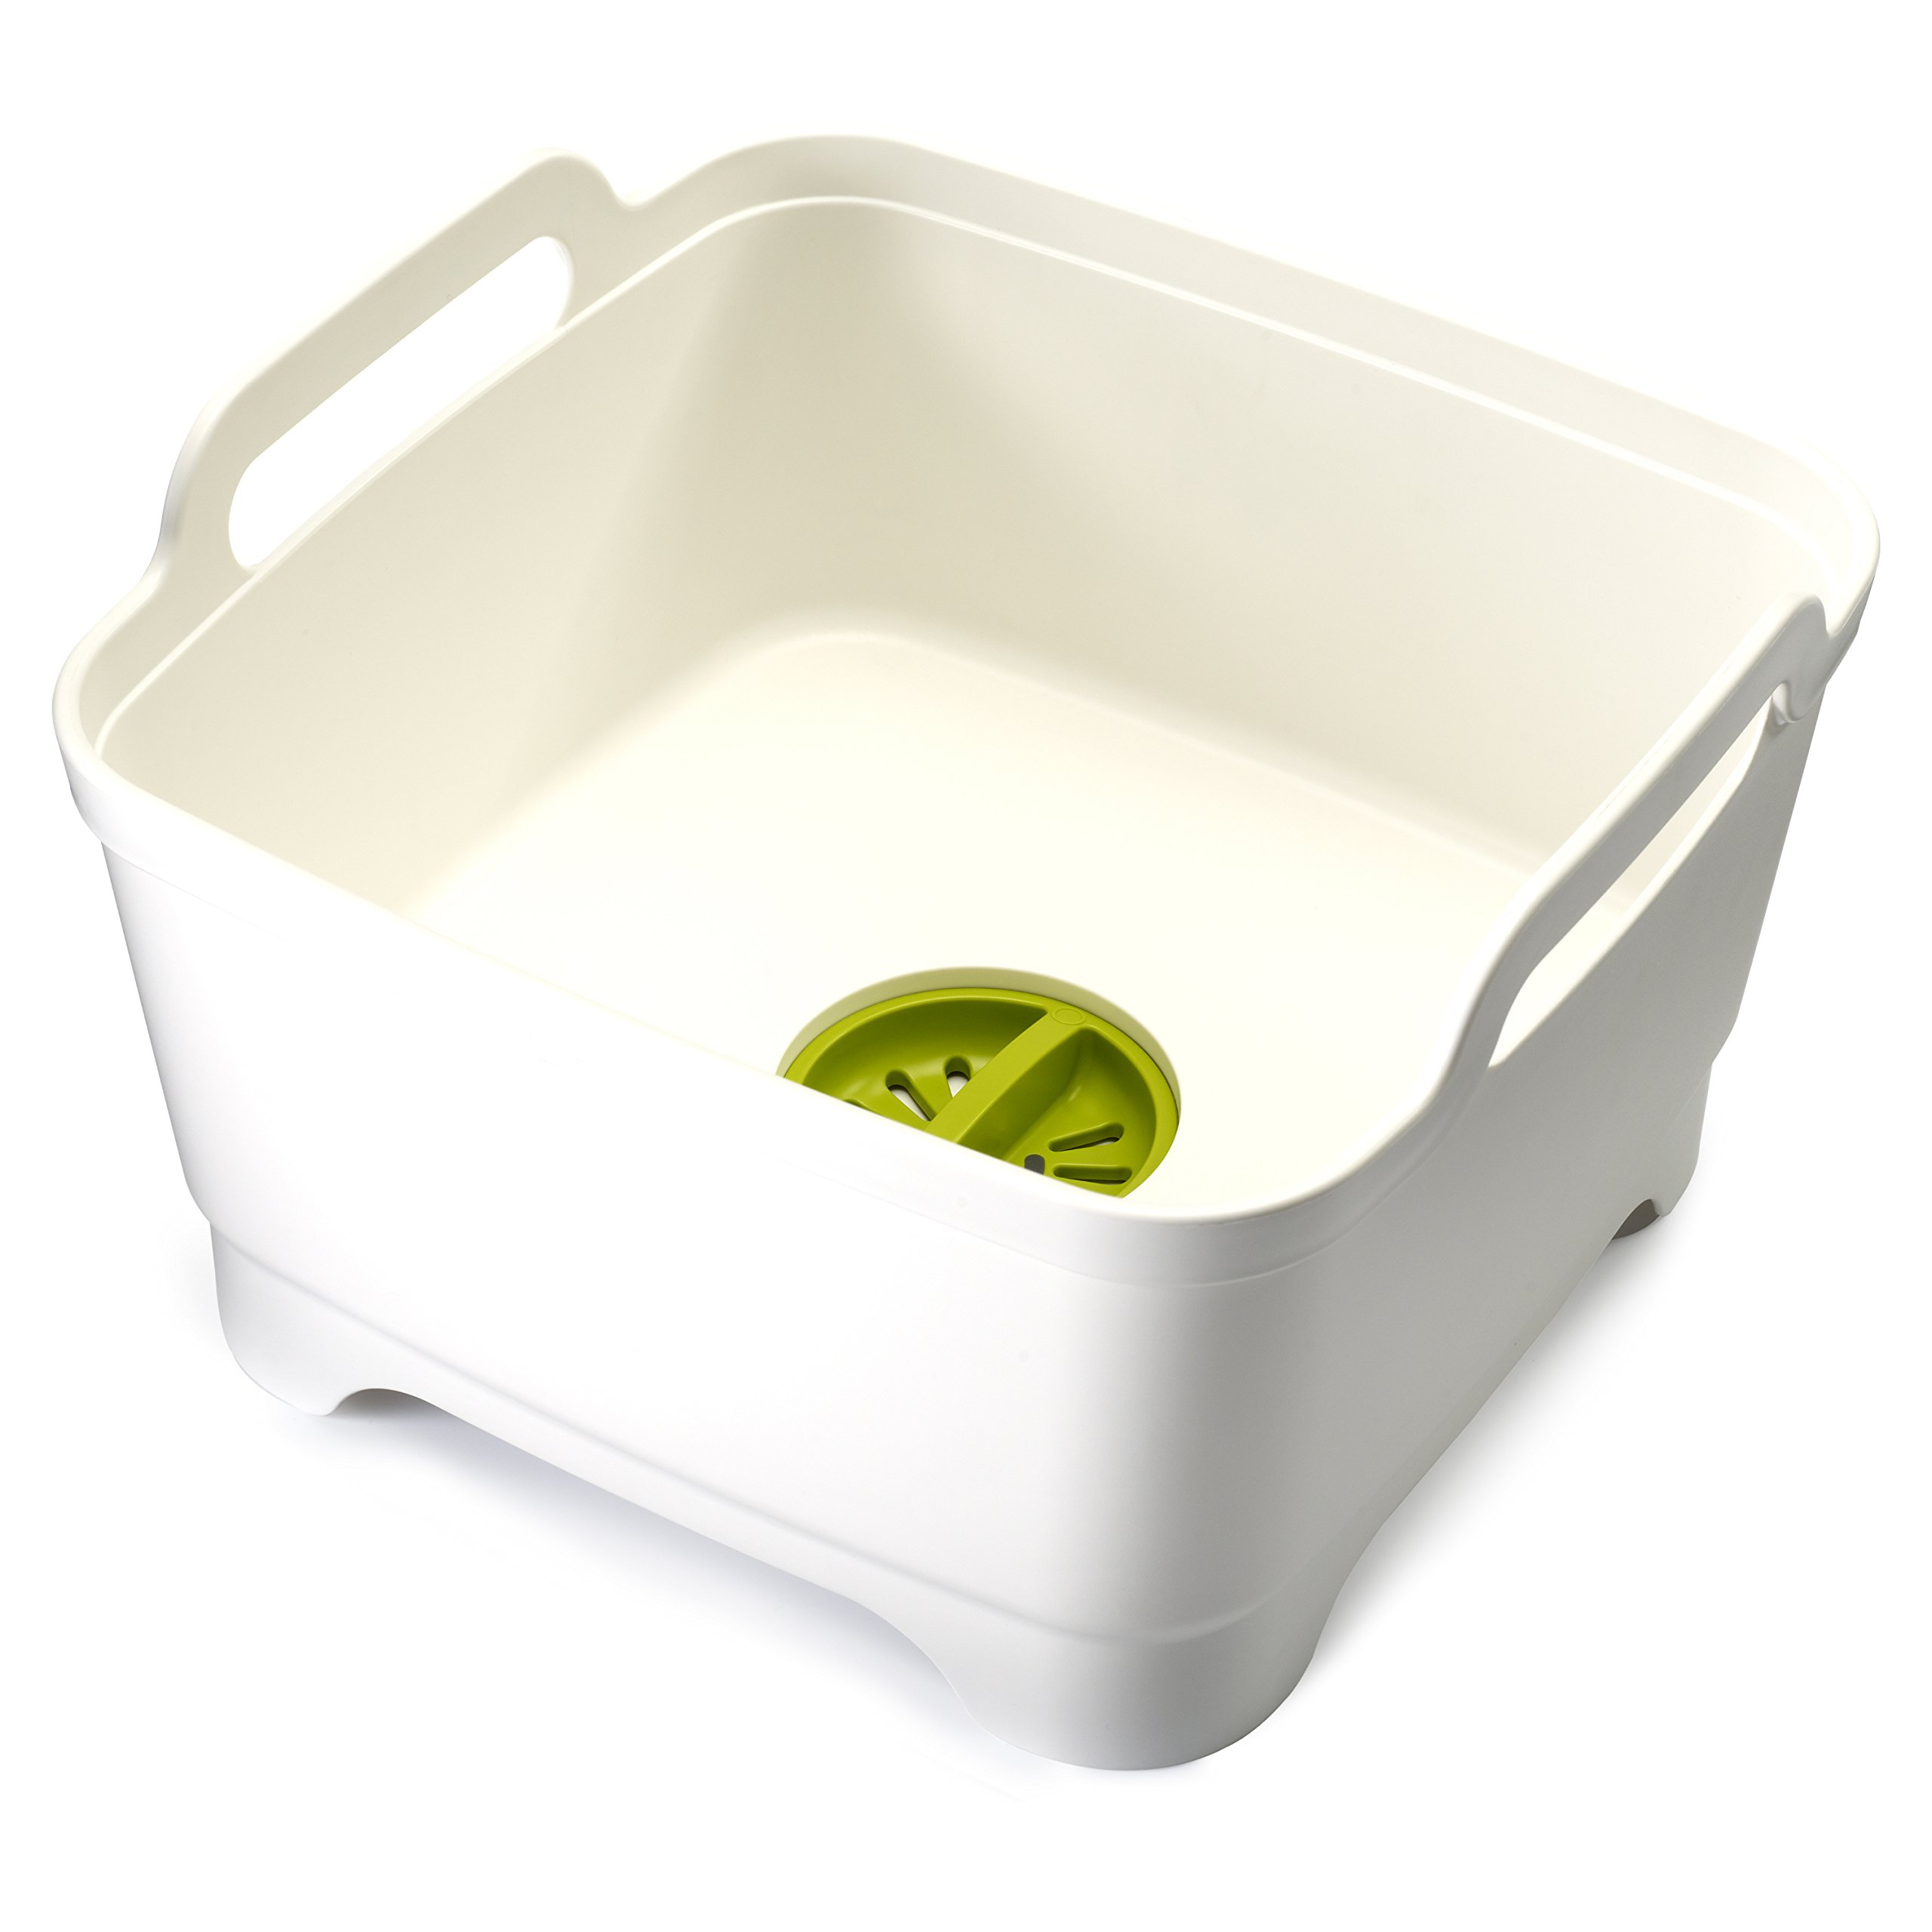 Joseph Joseph 85055 Wash & Drain Wash Basin Dishpan with Draining Plug Carry Handles 12.4-in x 12.2-in x 7.5-in, White by Joseph Joseph